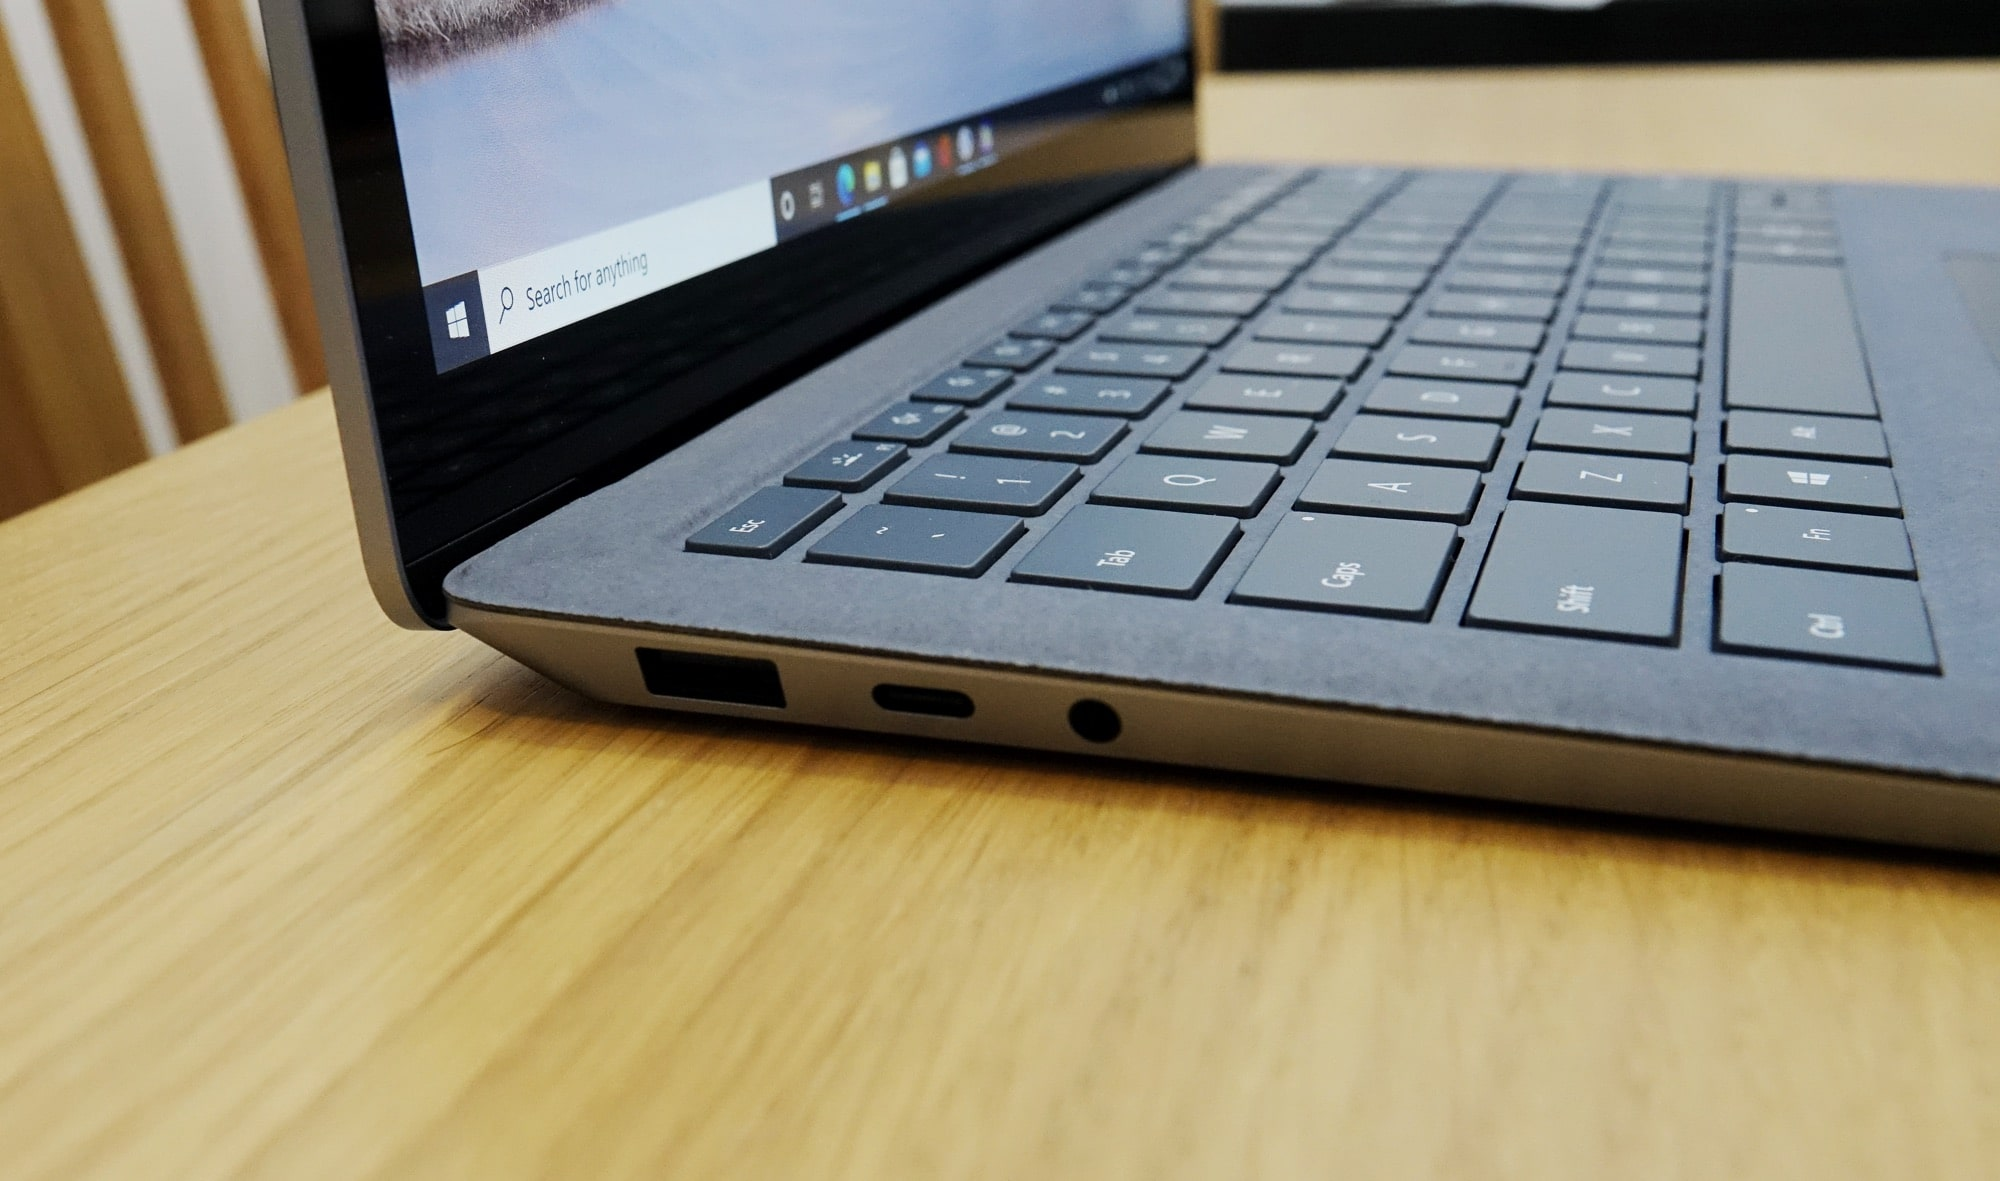 The ports of the Surface Laptop 4